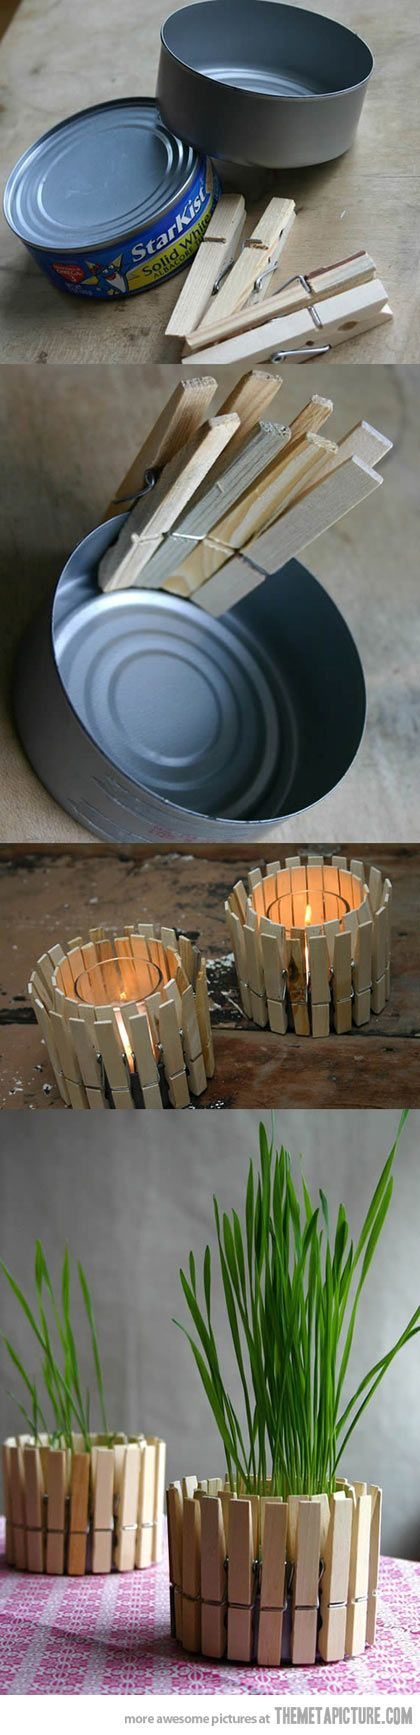 Genius! Tin cans + clothes pins = awesome candle holders! I'll be making some of these with decorated pins.